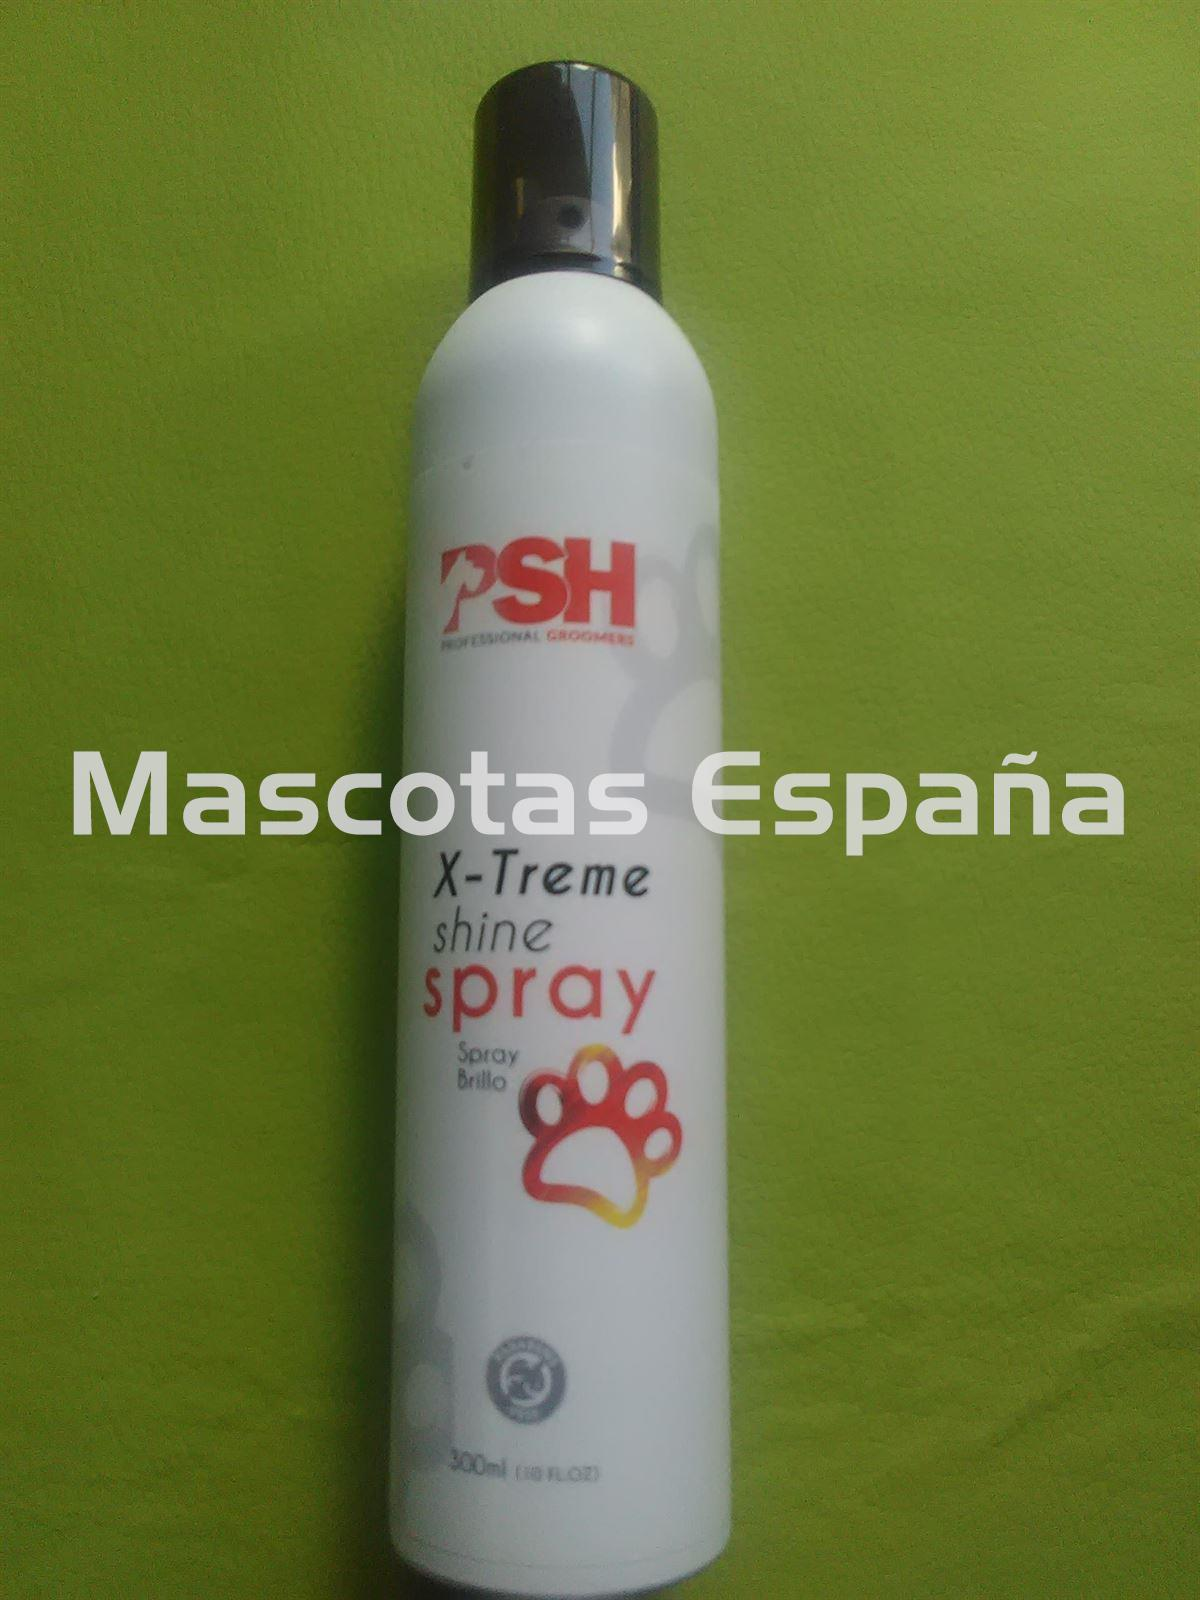 PSH X-Treme Shine Spray (Spray Brillo) 300ml - Imagen 1